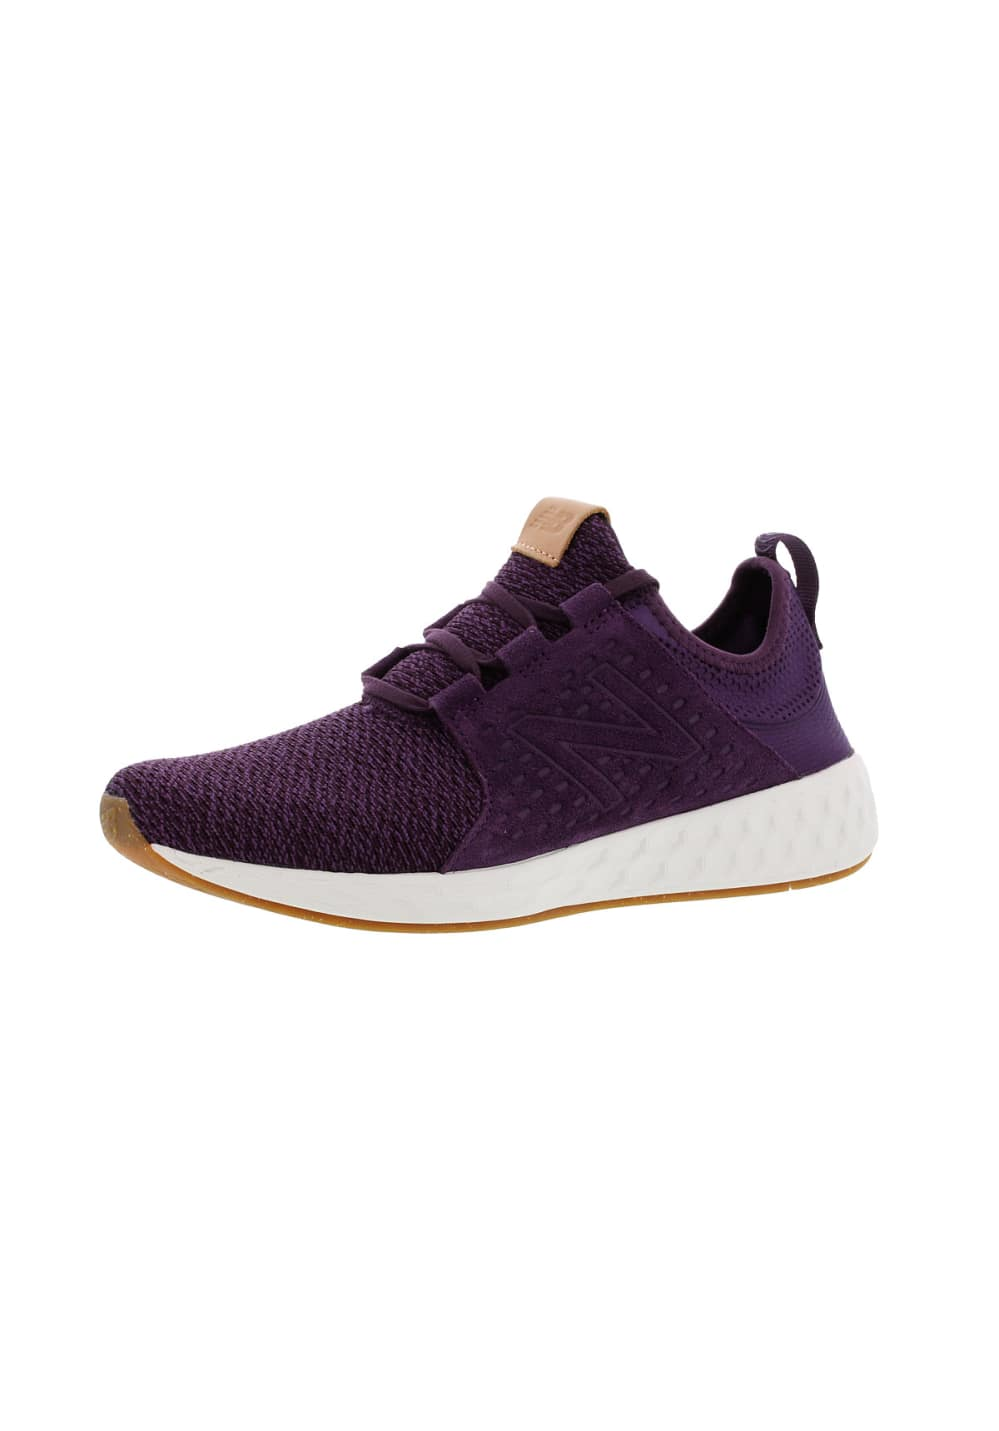 96454df1b34 Next. -60%. New Balance. Fresh Foam Cruz - Zapatillas de running para Mujer